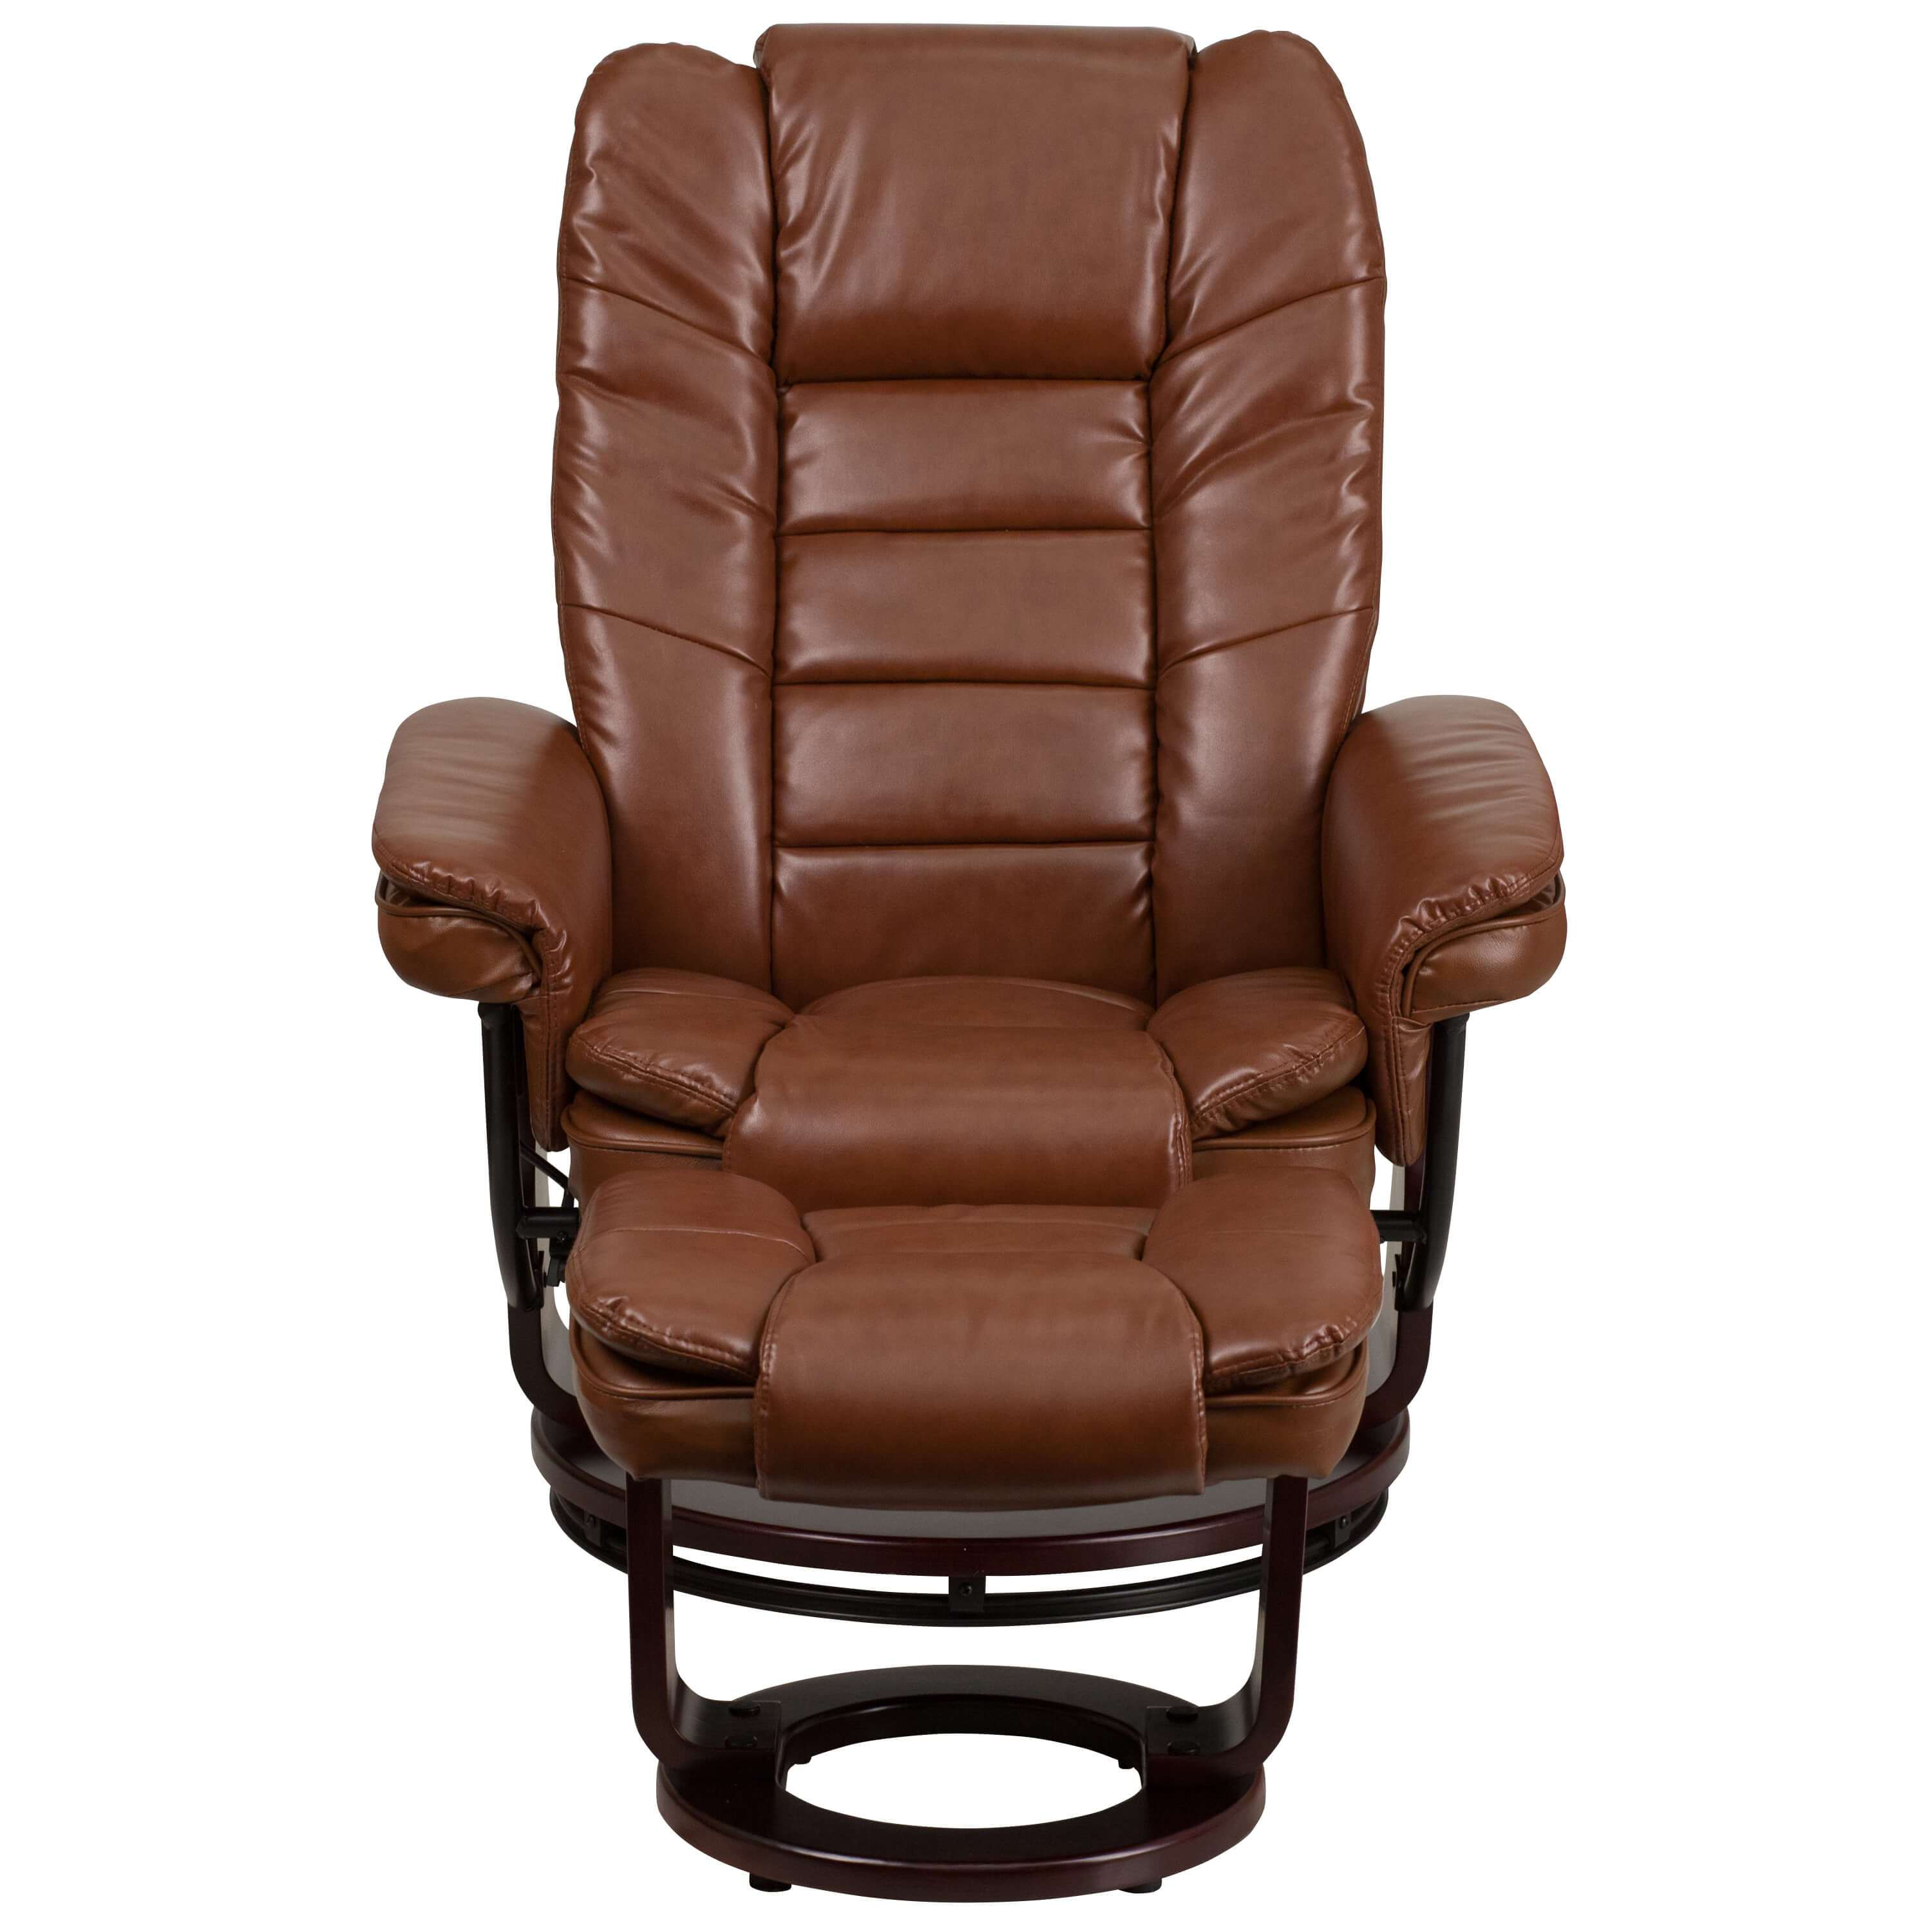 Contemporary recliner chair front view